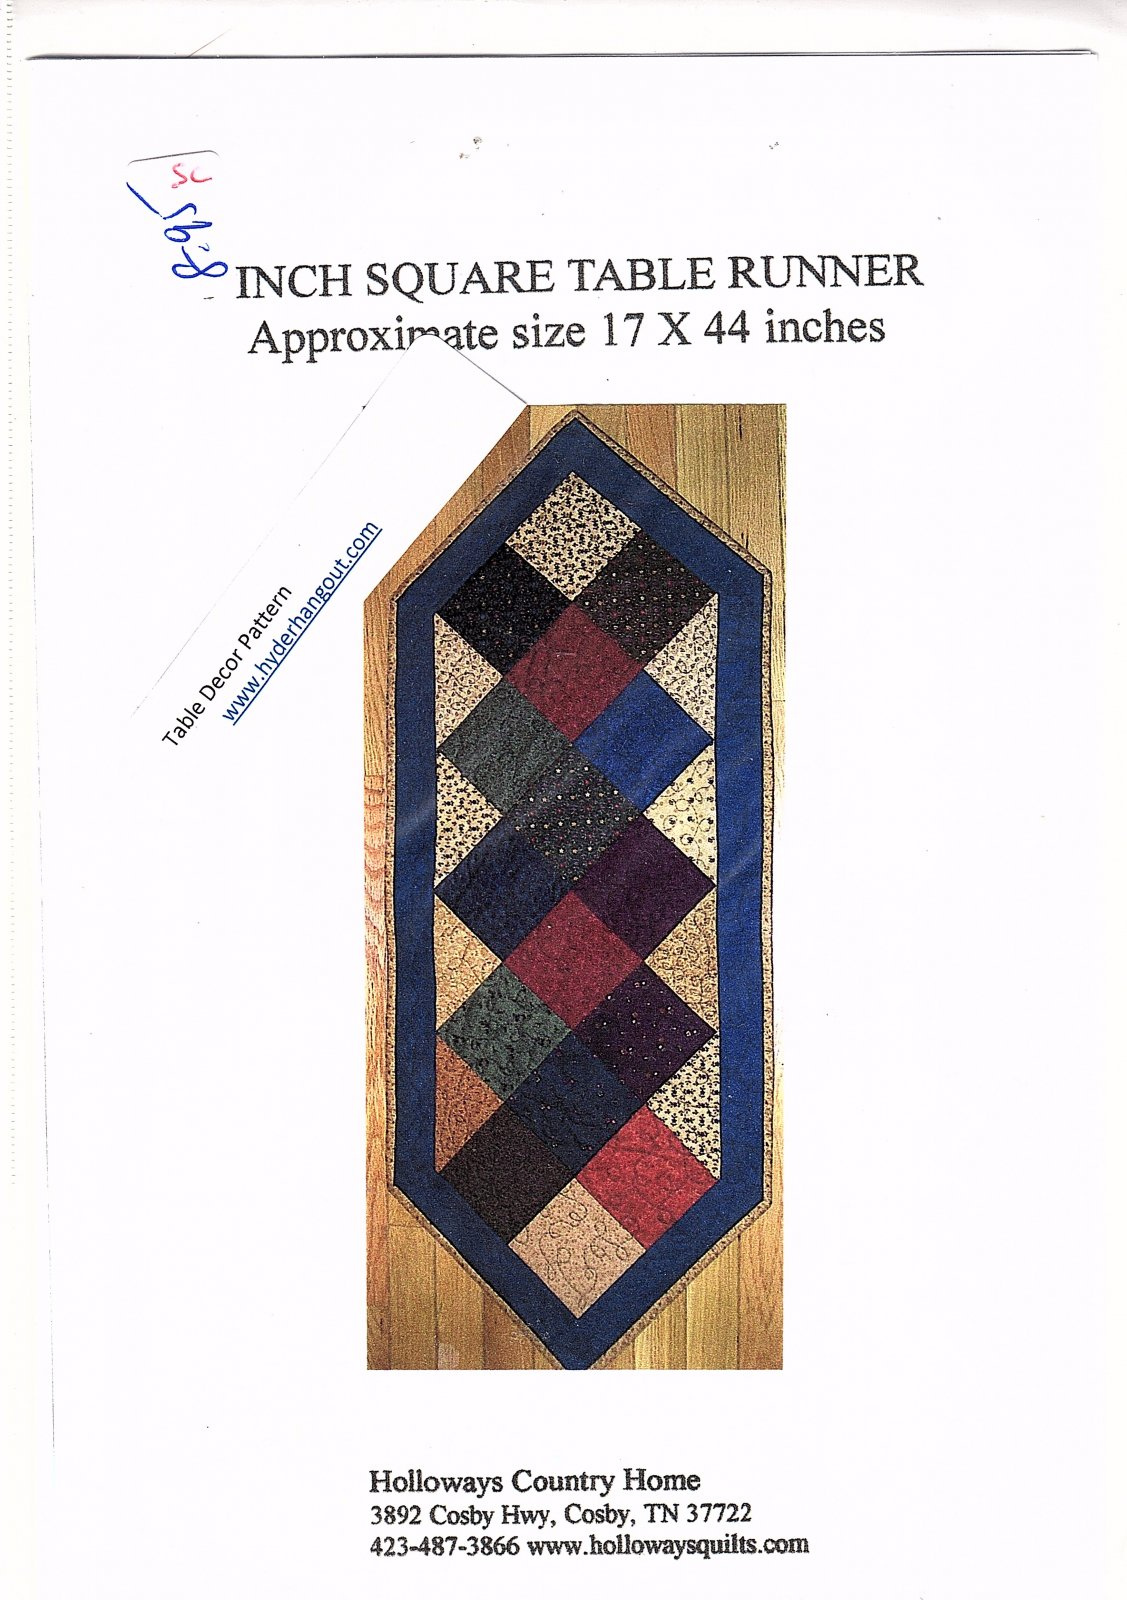 5 Inch Square Table Runner by Holloway's Country Home  17 x 44